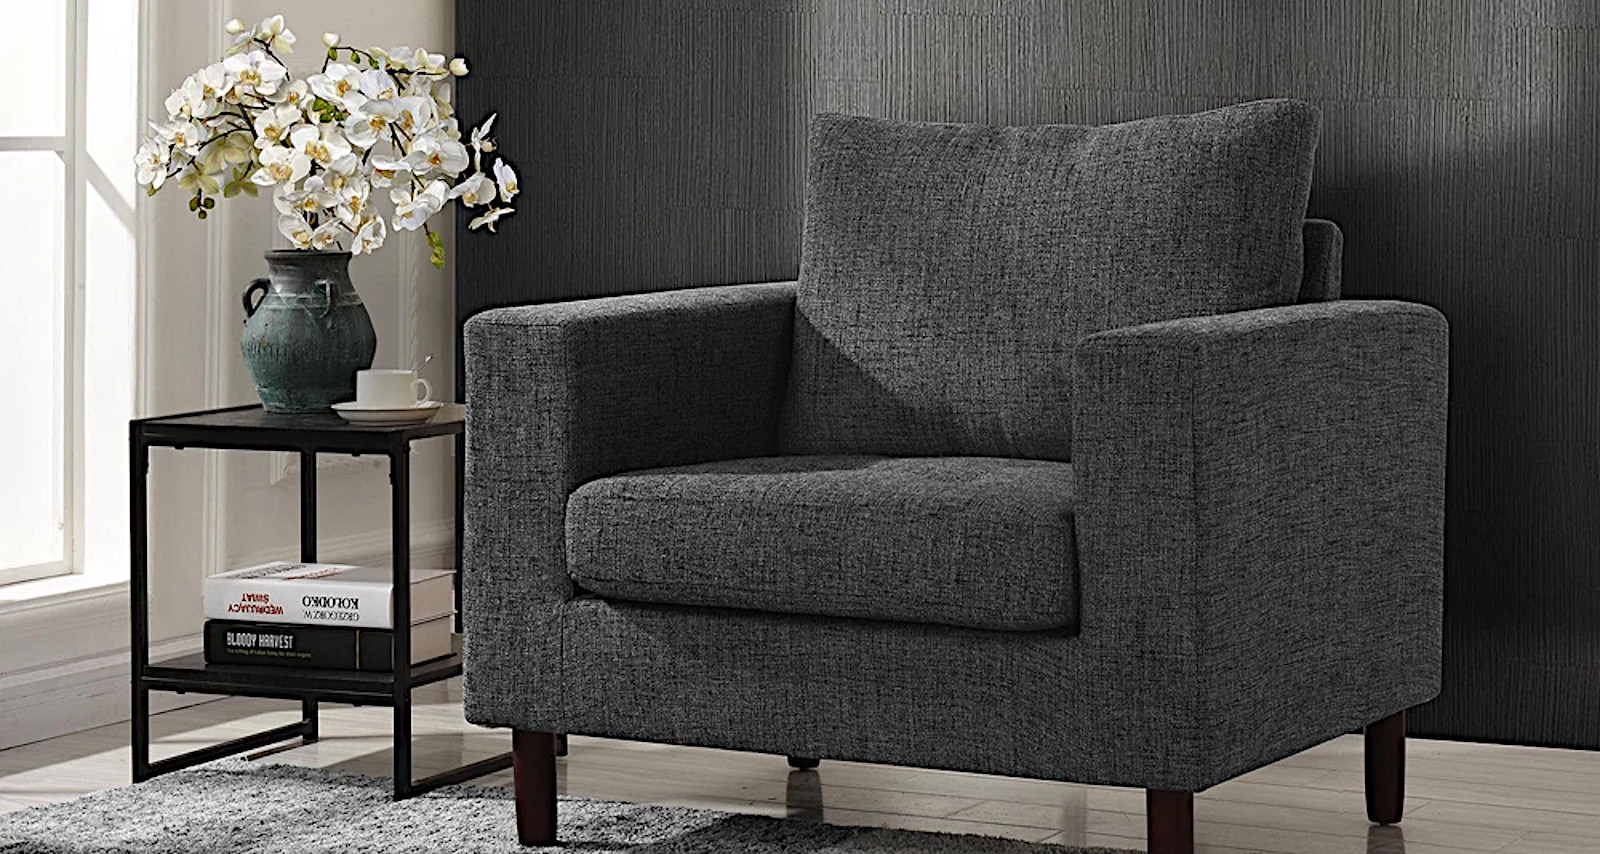 Amazing accent chairs